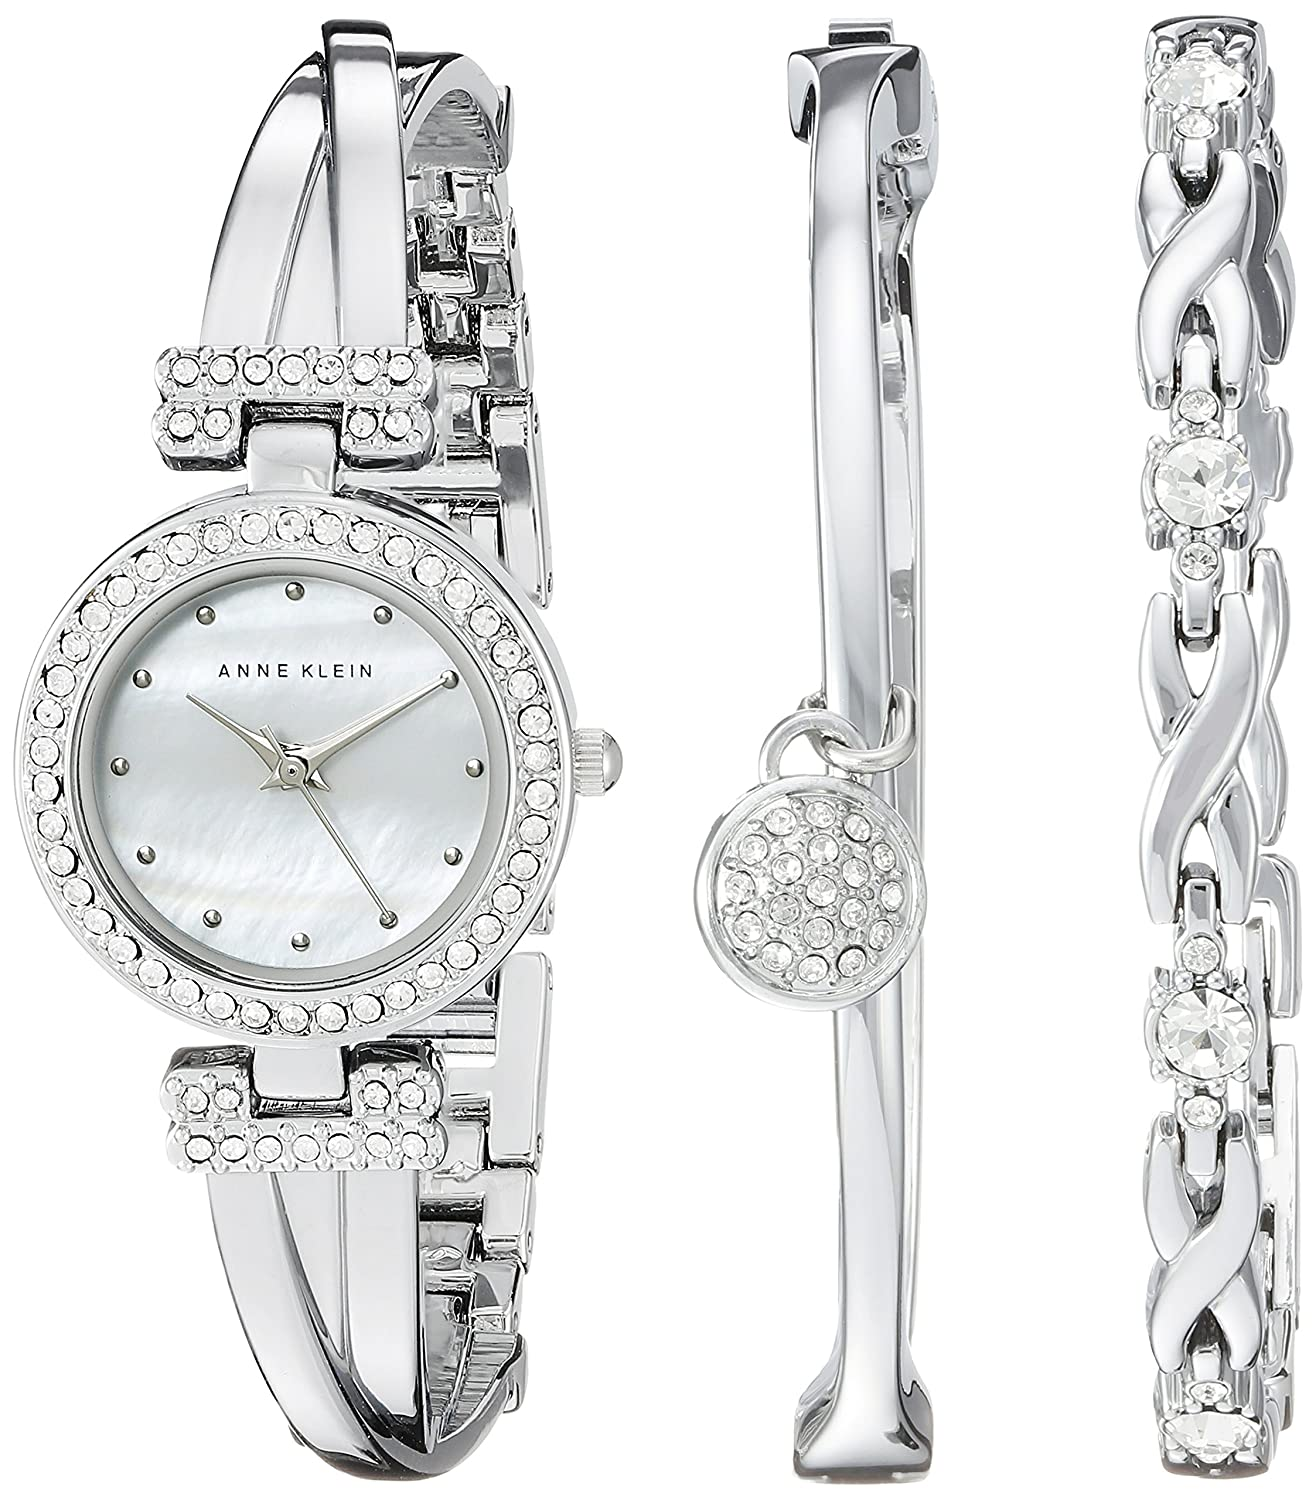 ak bangle bracelets silver accented tone bangles dp crystal watches watch bracelet and set klein com s anne women amazon sets swarovski